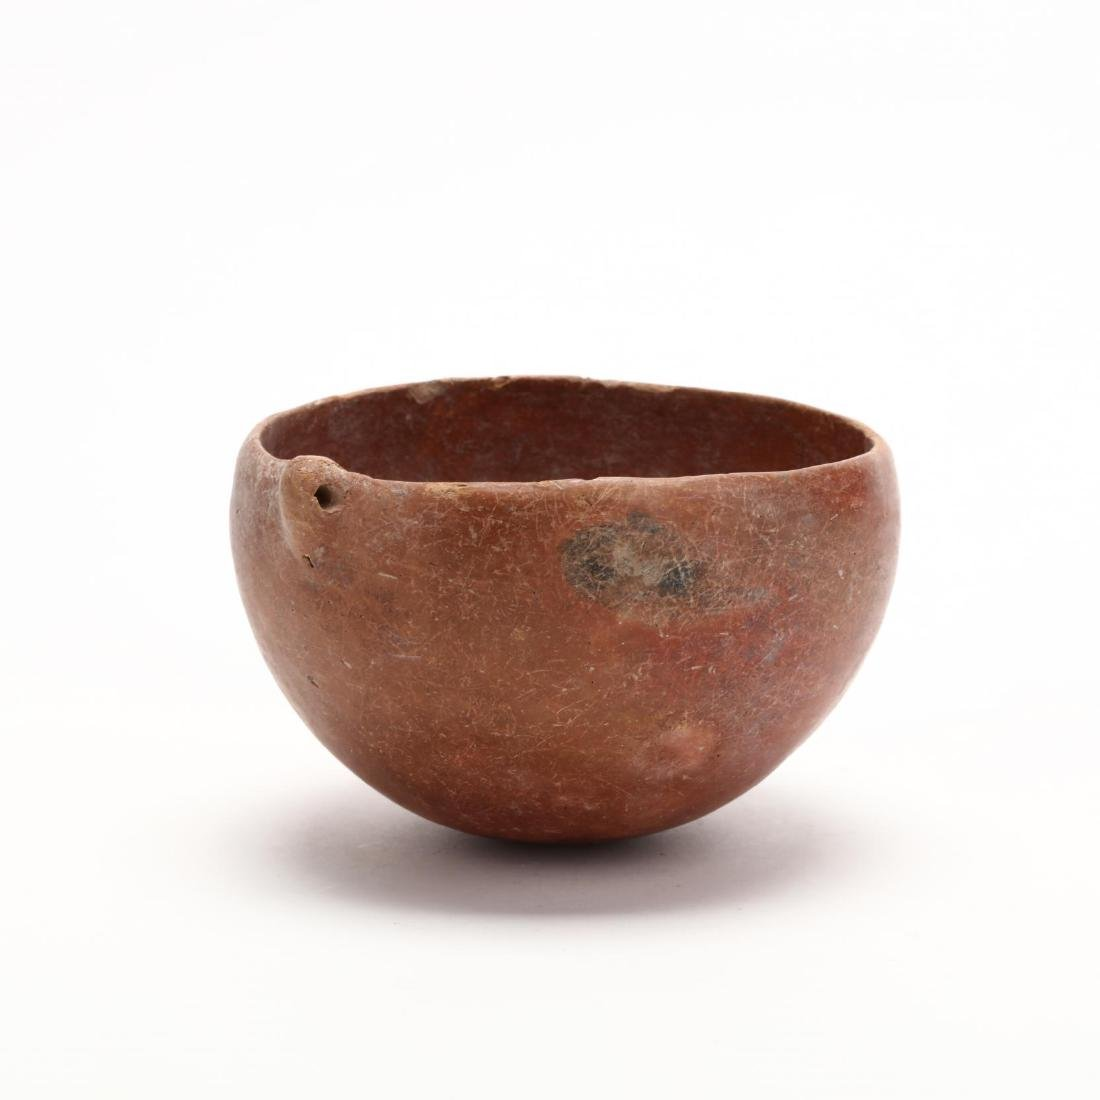 Cypriot Early Bronze Age Polished Red Ware Bowl - 5